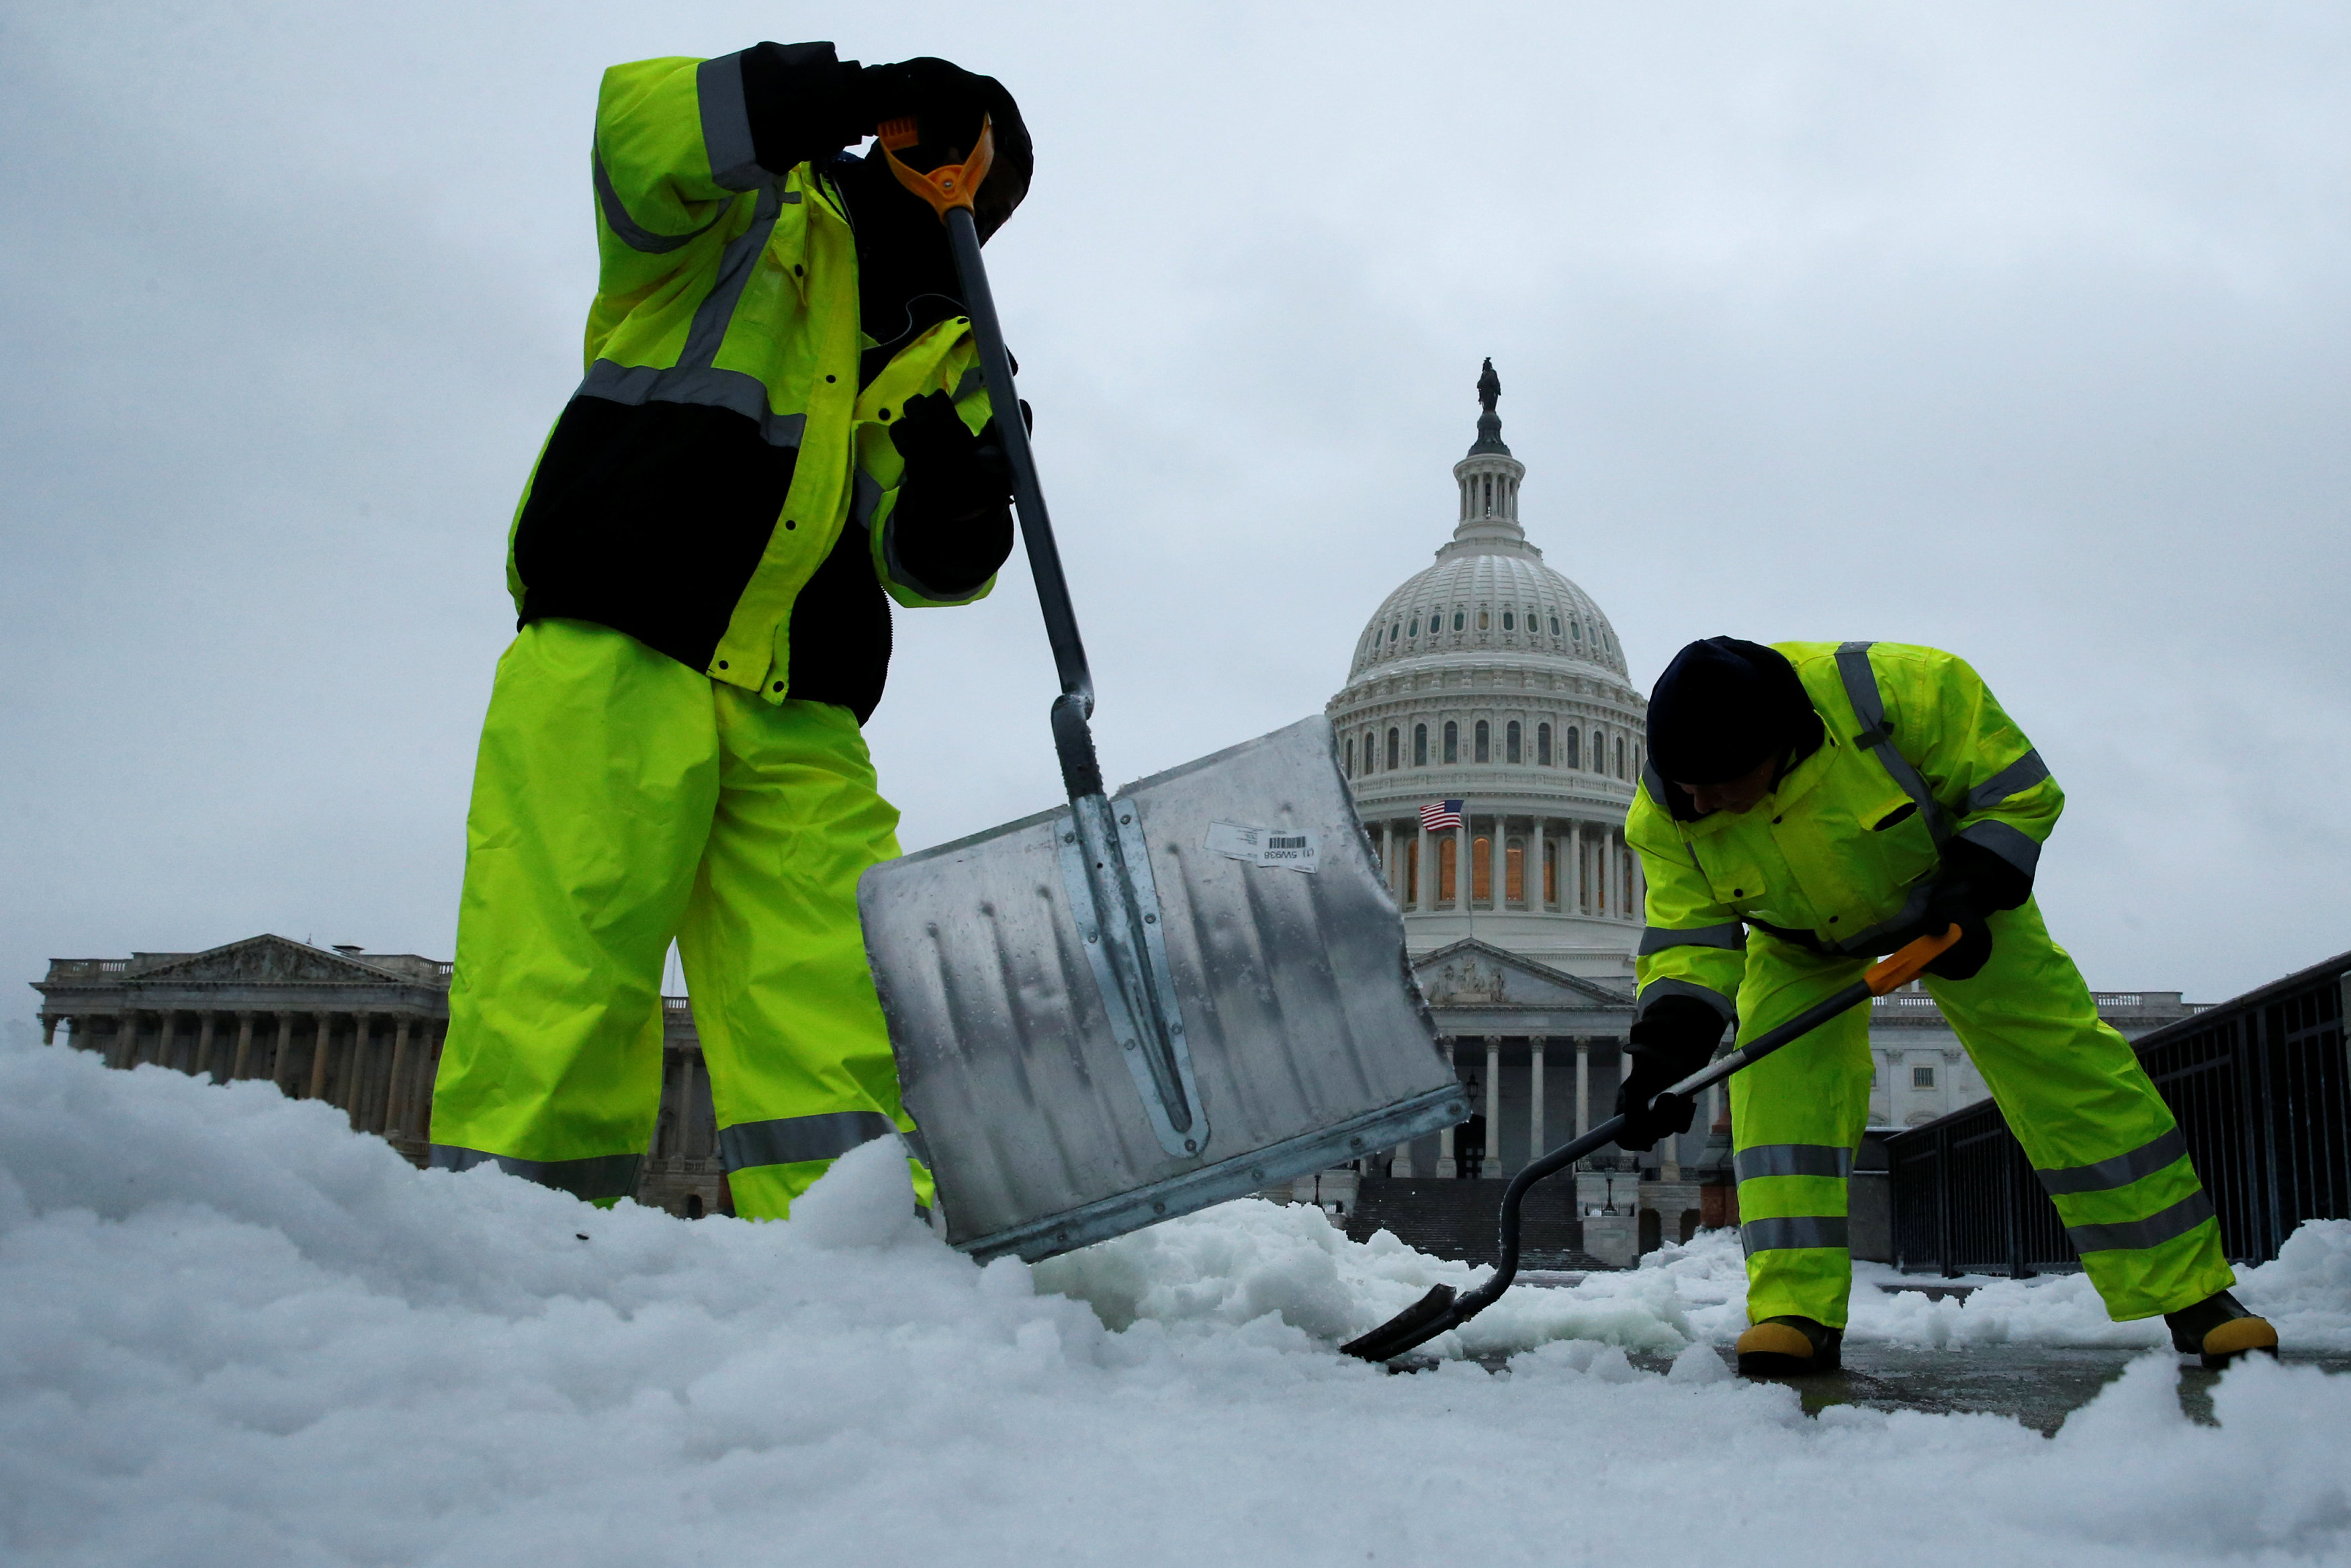 Workers clear frozen precipitation from a walkway at the U.S. Capitol in Washington, U.S., March 14, 2017. REUTERS/Jonathan Ernst